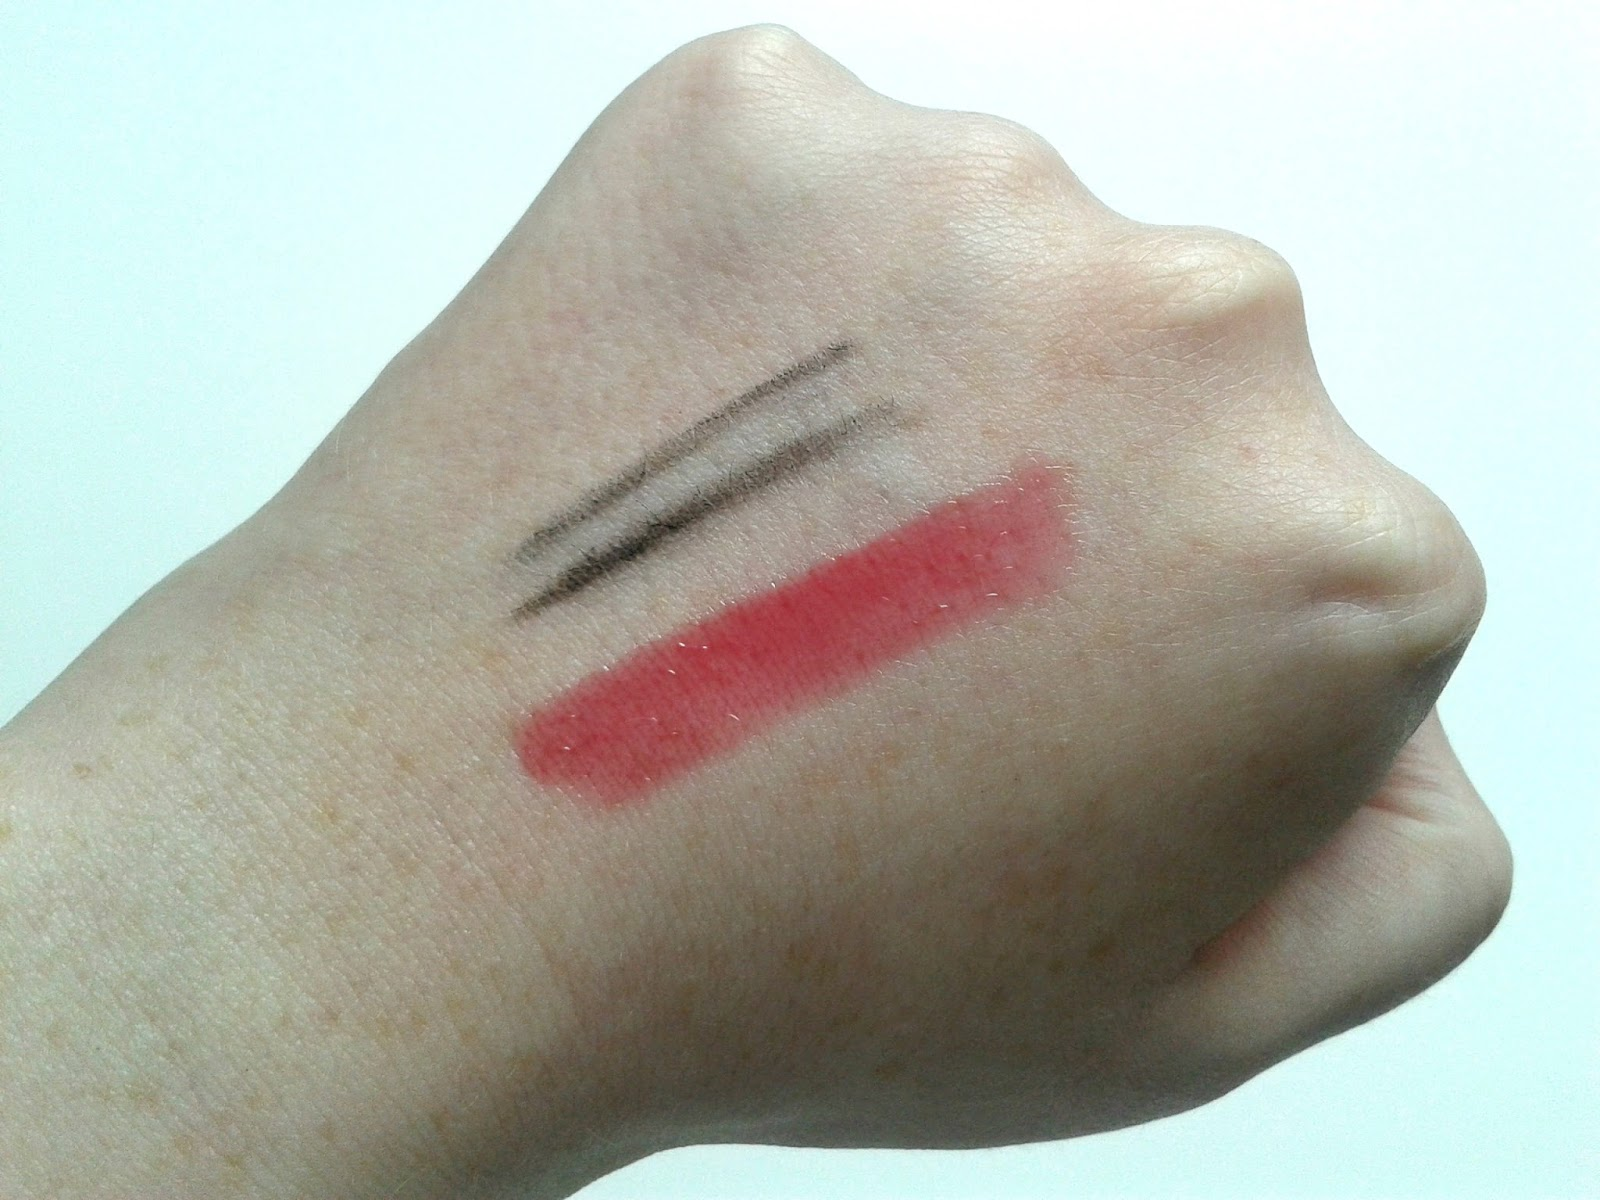 Daniel Sandler Grey Velvet Waterproof Eyeliner Estee Lauder Pure Colour Lip Gloss in Brazen Berry Shine Swatches Beauty Review